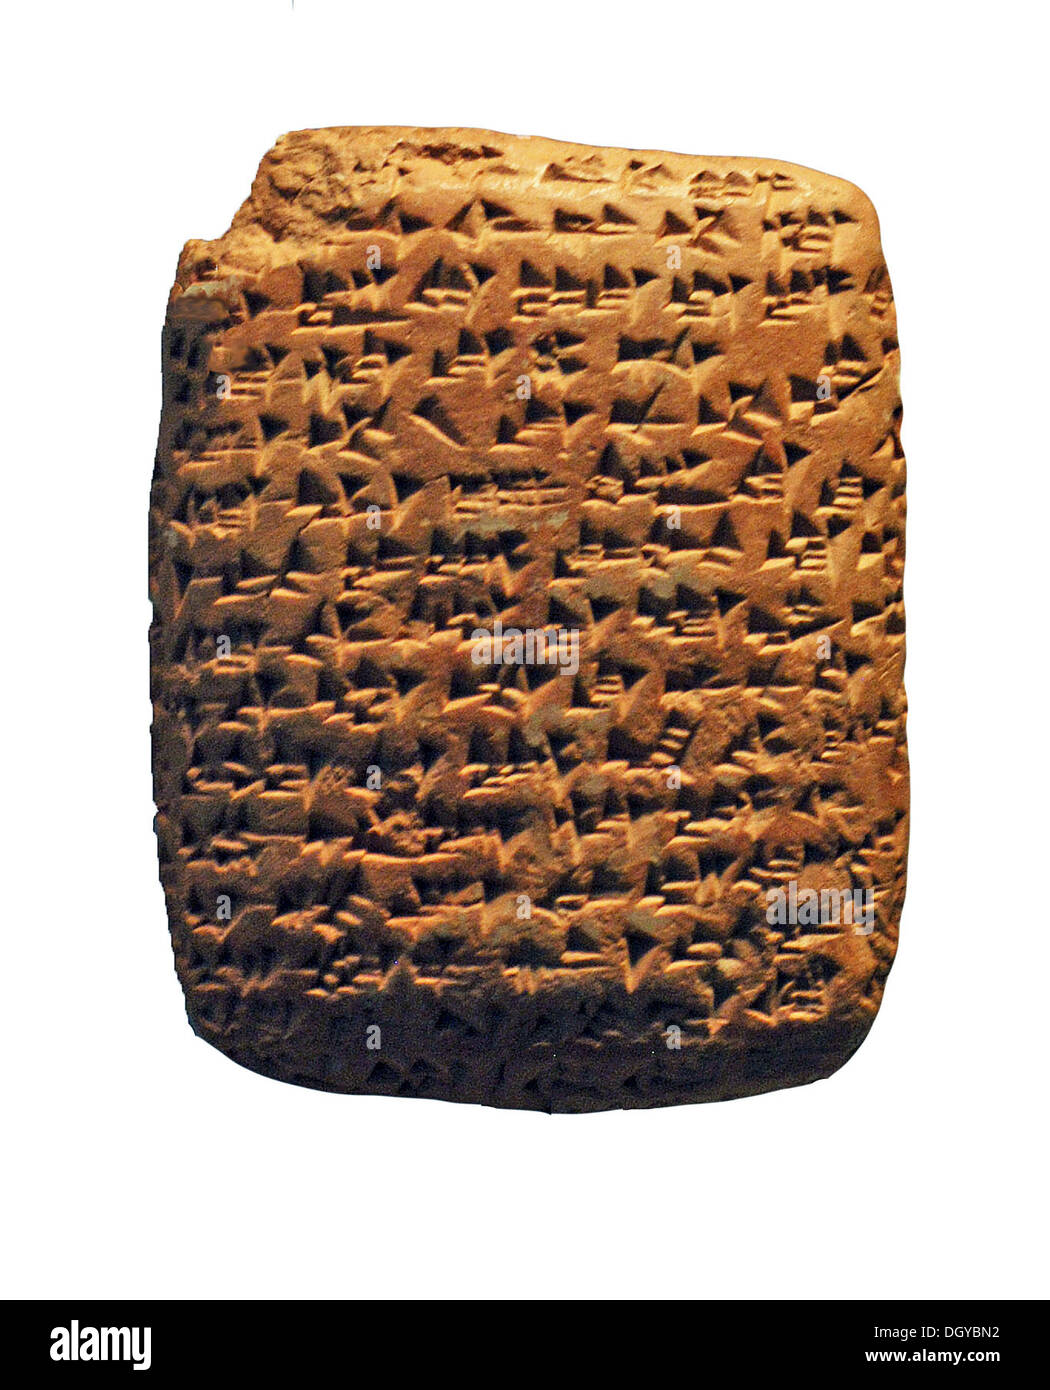 5752. Akkadian quniform letter sent from Canaan to Egypt mentioning granaries in Jaffa. Tel Amarna, 14th. C. BC. - Stock Image